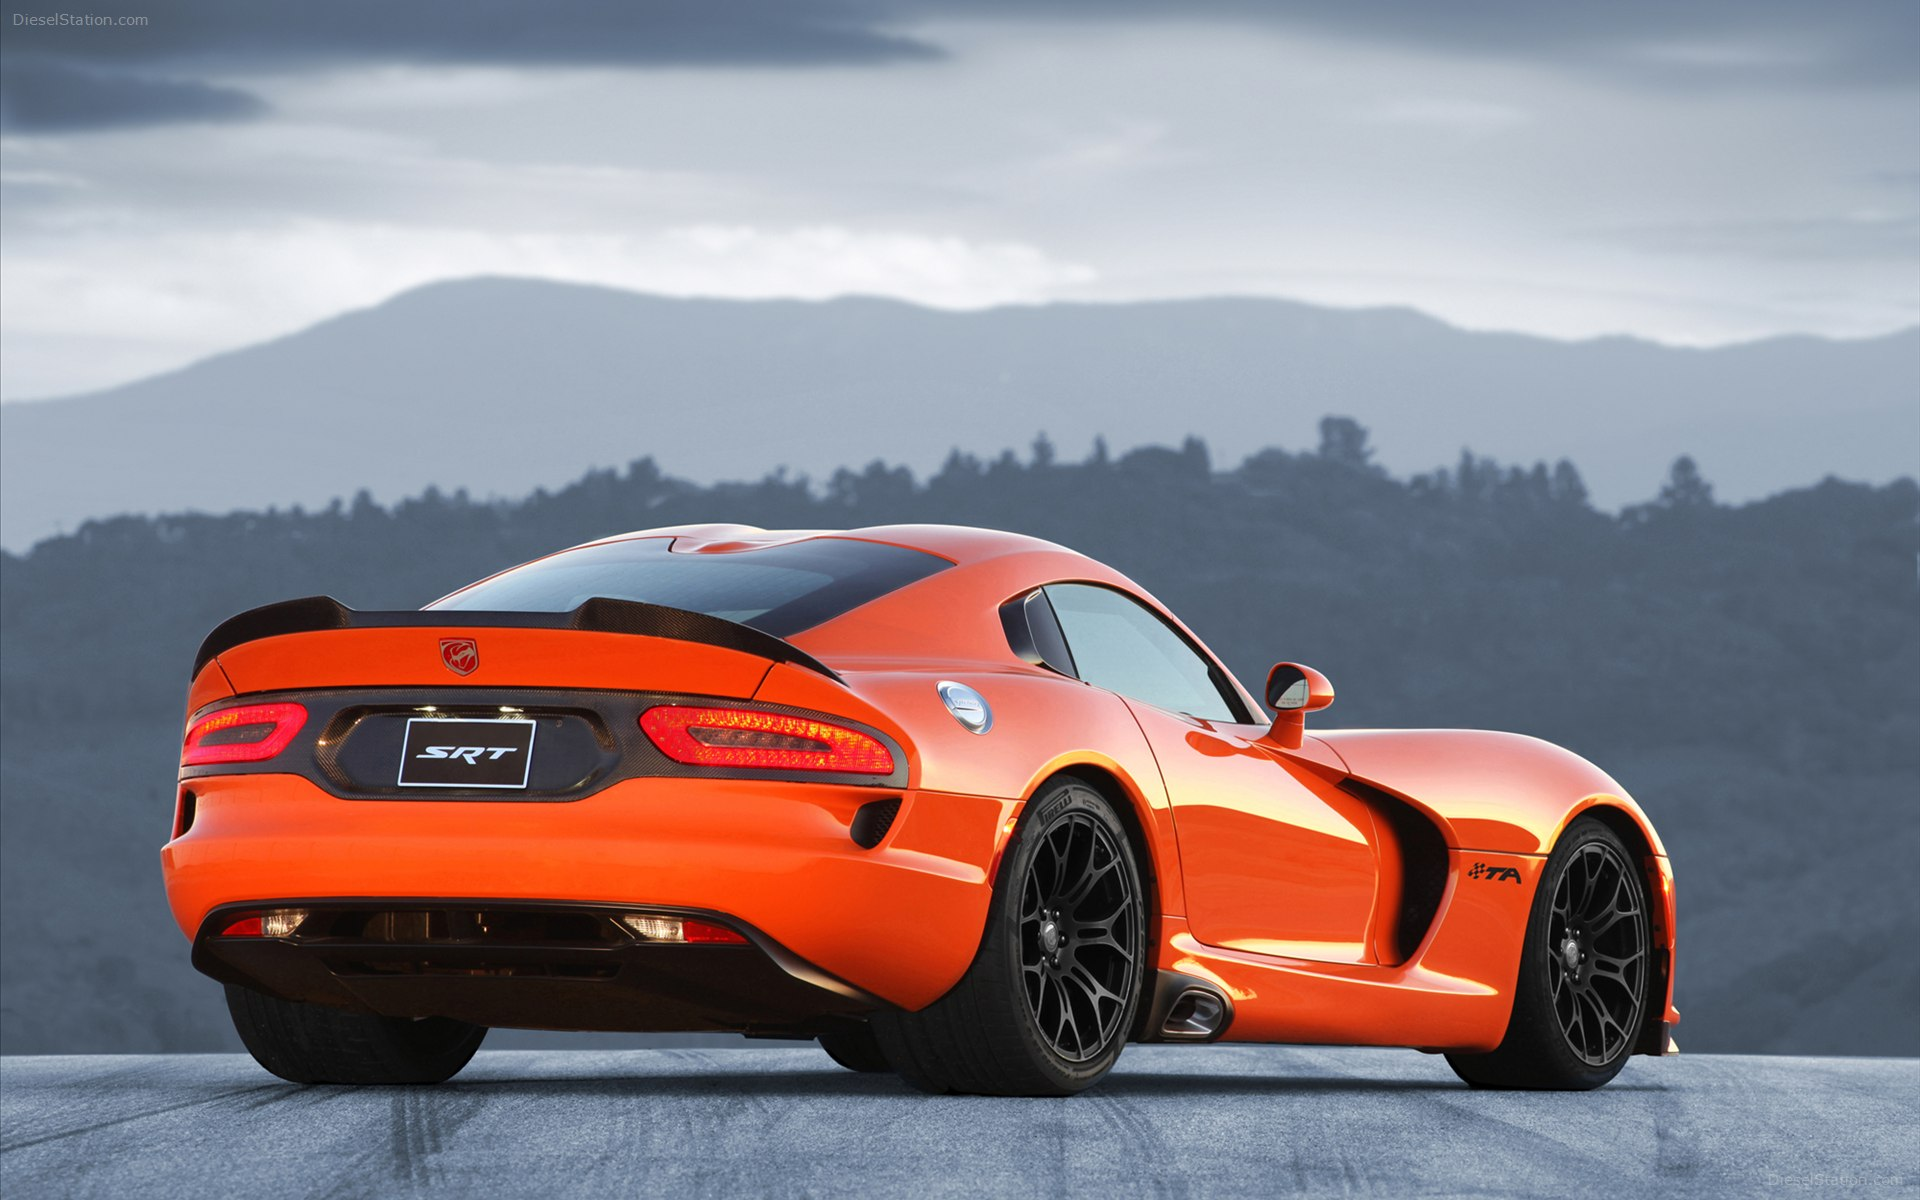 2014 dodge srt viper ta back left view